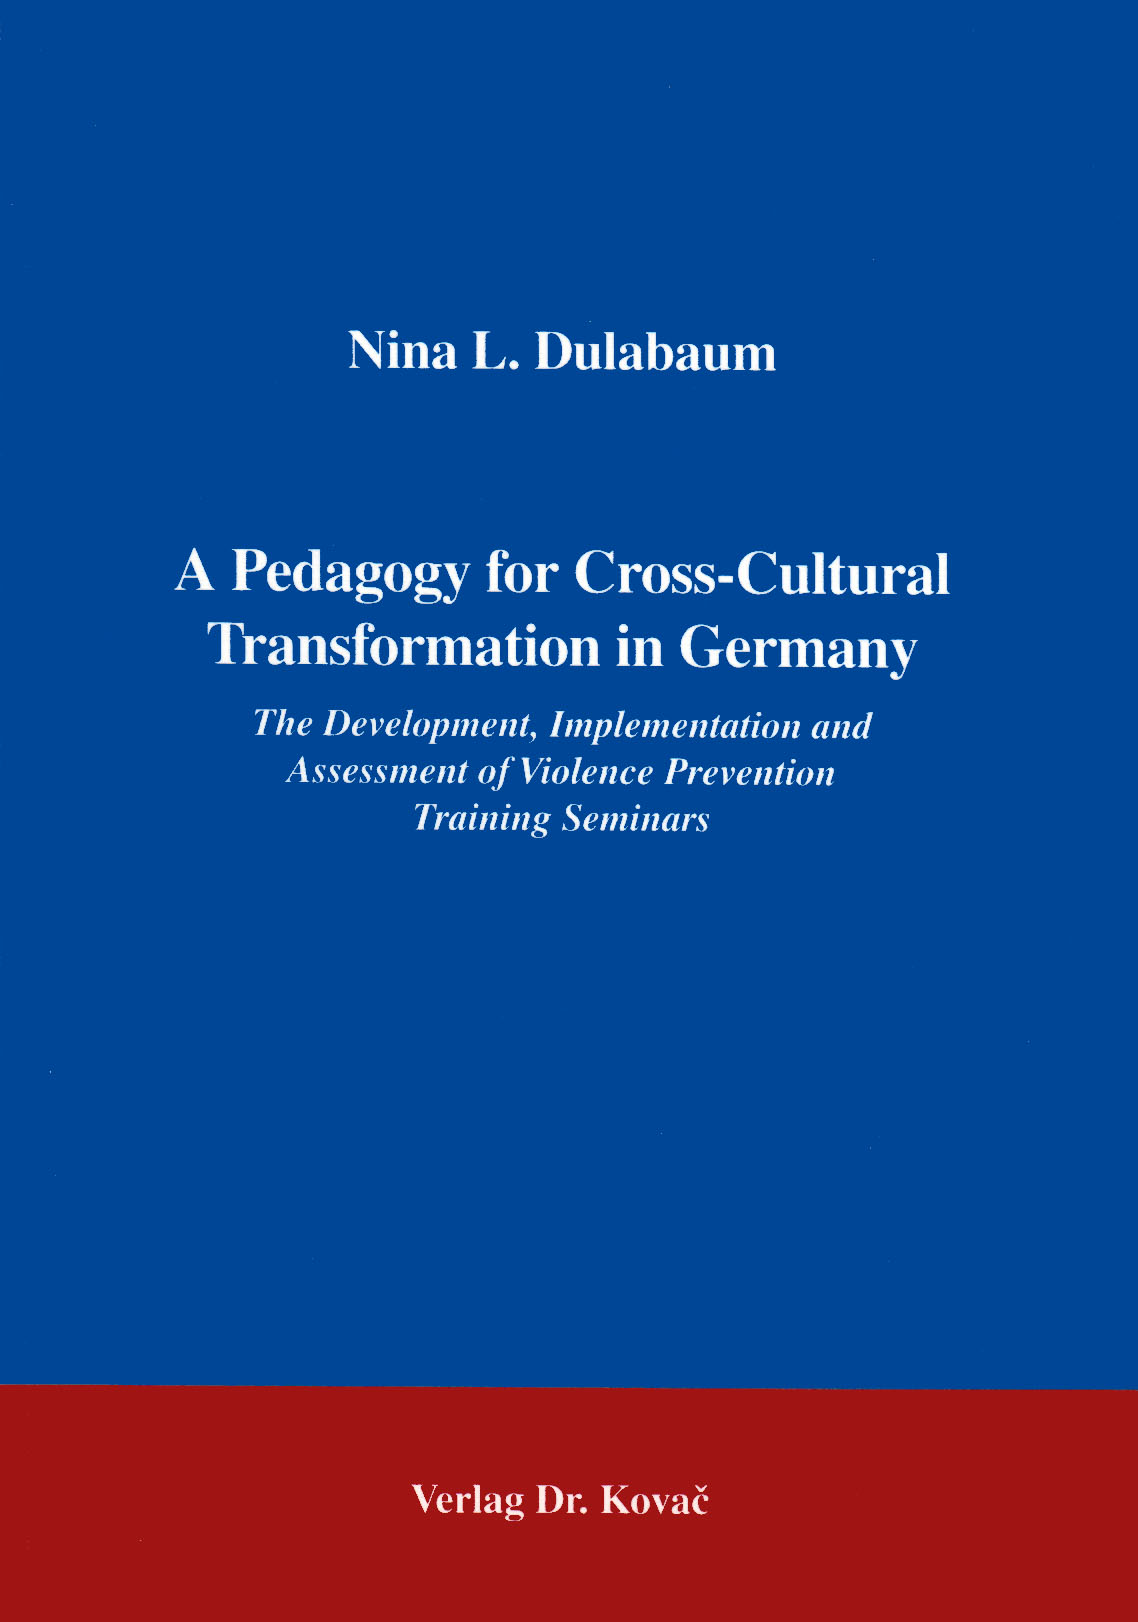 Cover: A Pedagogy for Cross-Cultural Transformation in Germany